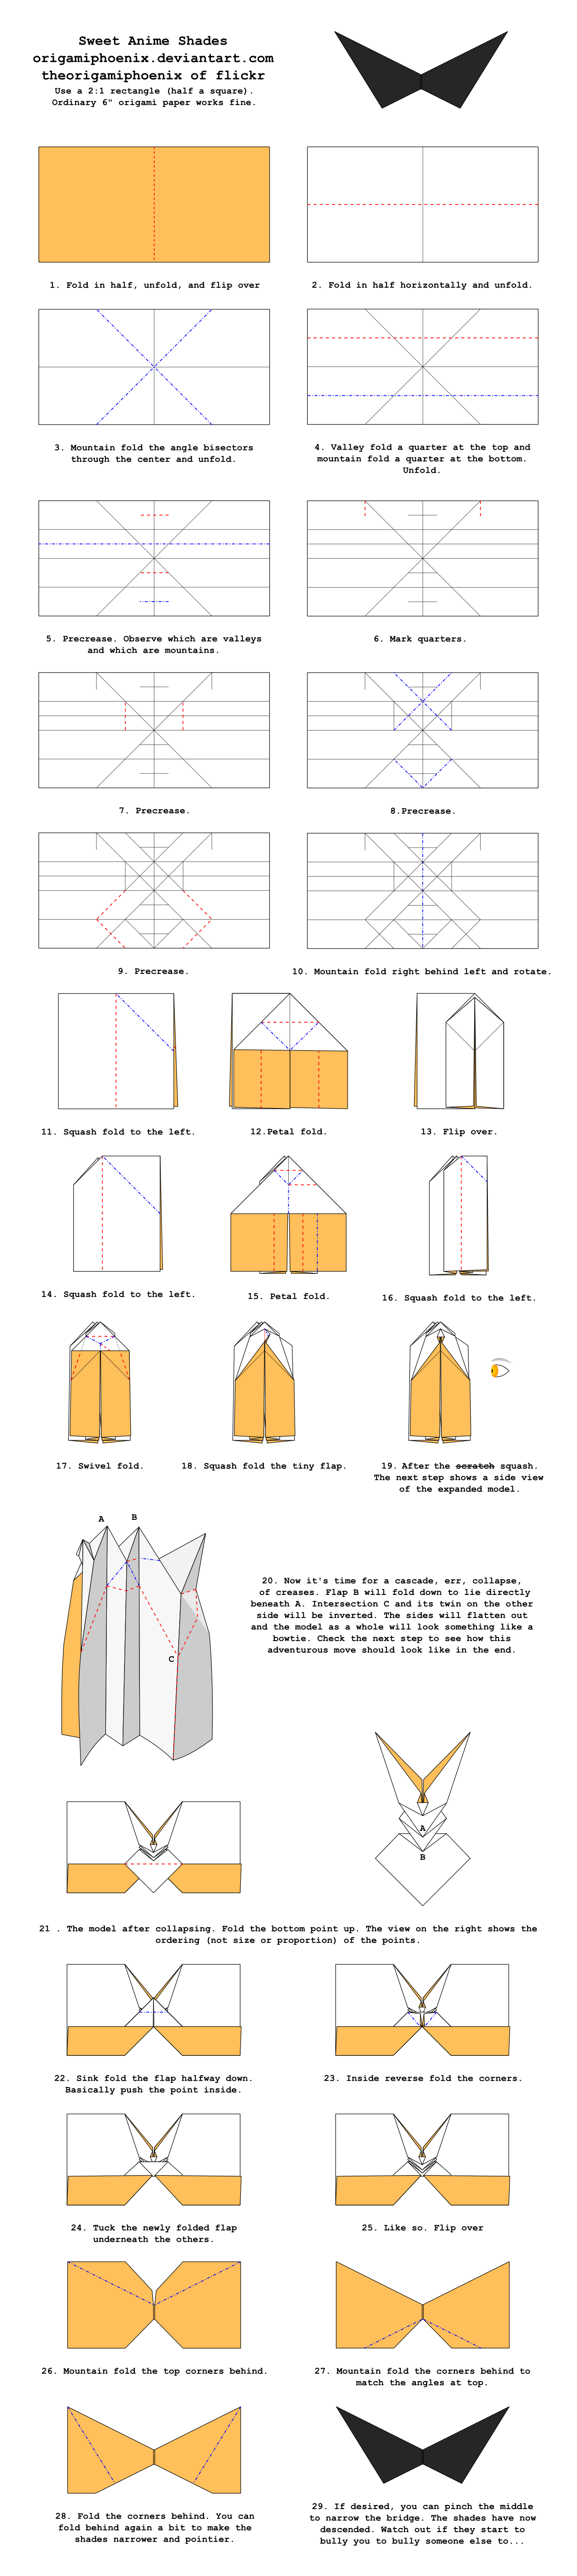 origami sweet anime shades diagrams by origamiphoenix on deviantart rh origamiphoenix deviantart com Jeremy Shafer Flasher Origami Flasher Diagrams